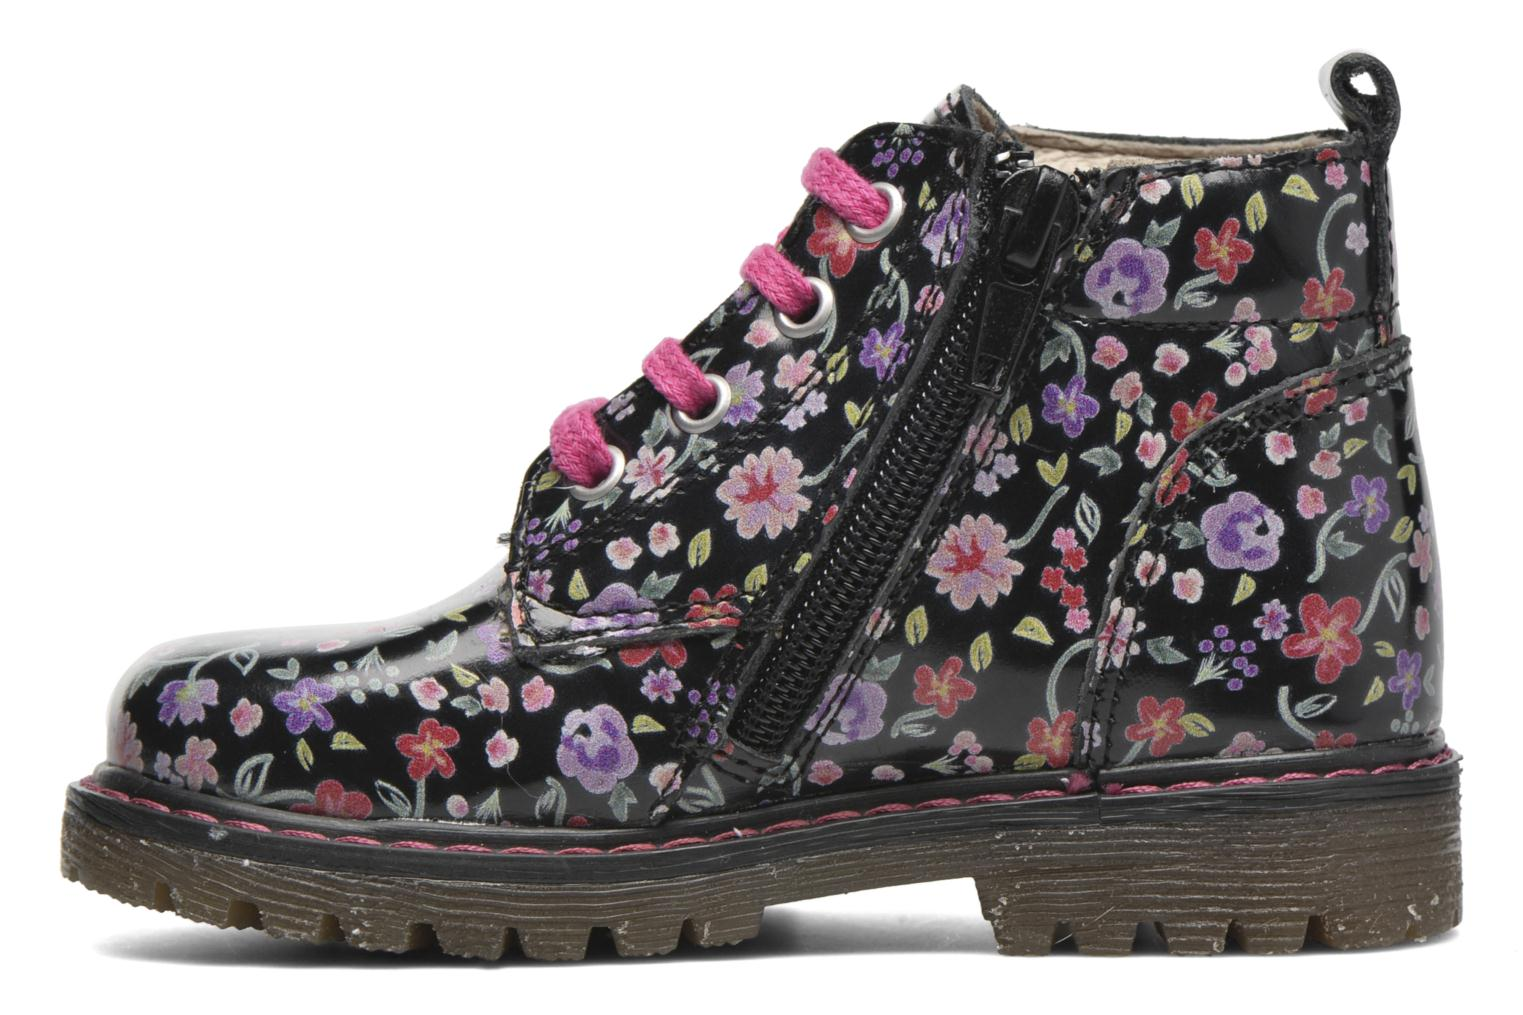 Bottines et boots Bopy Baviere Multicolore vue face